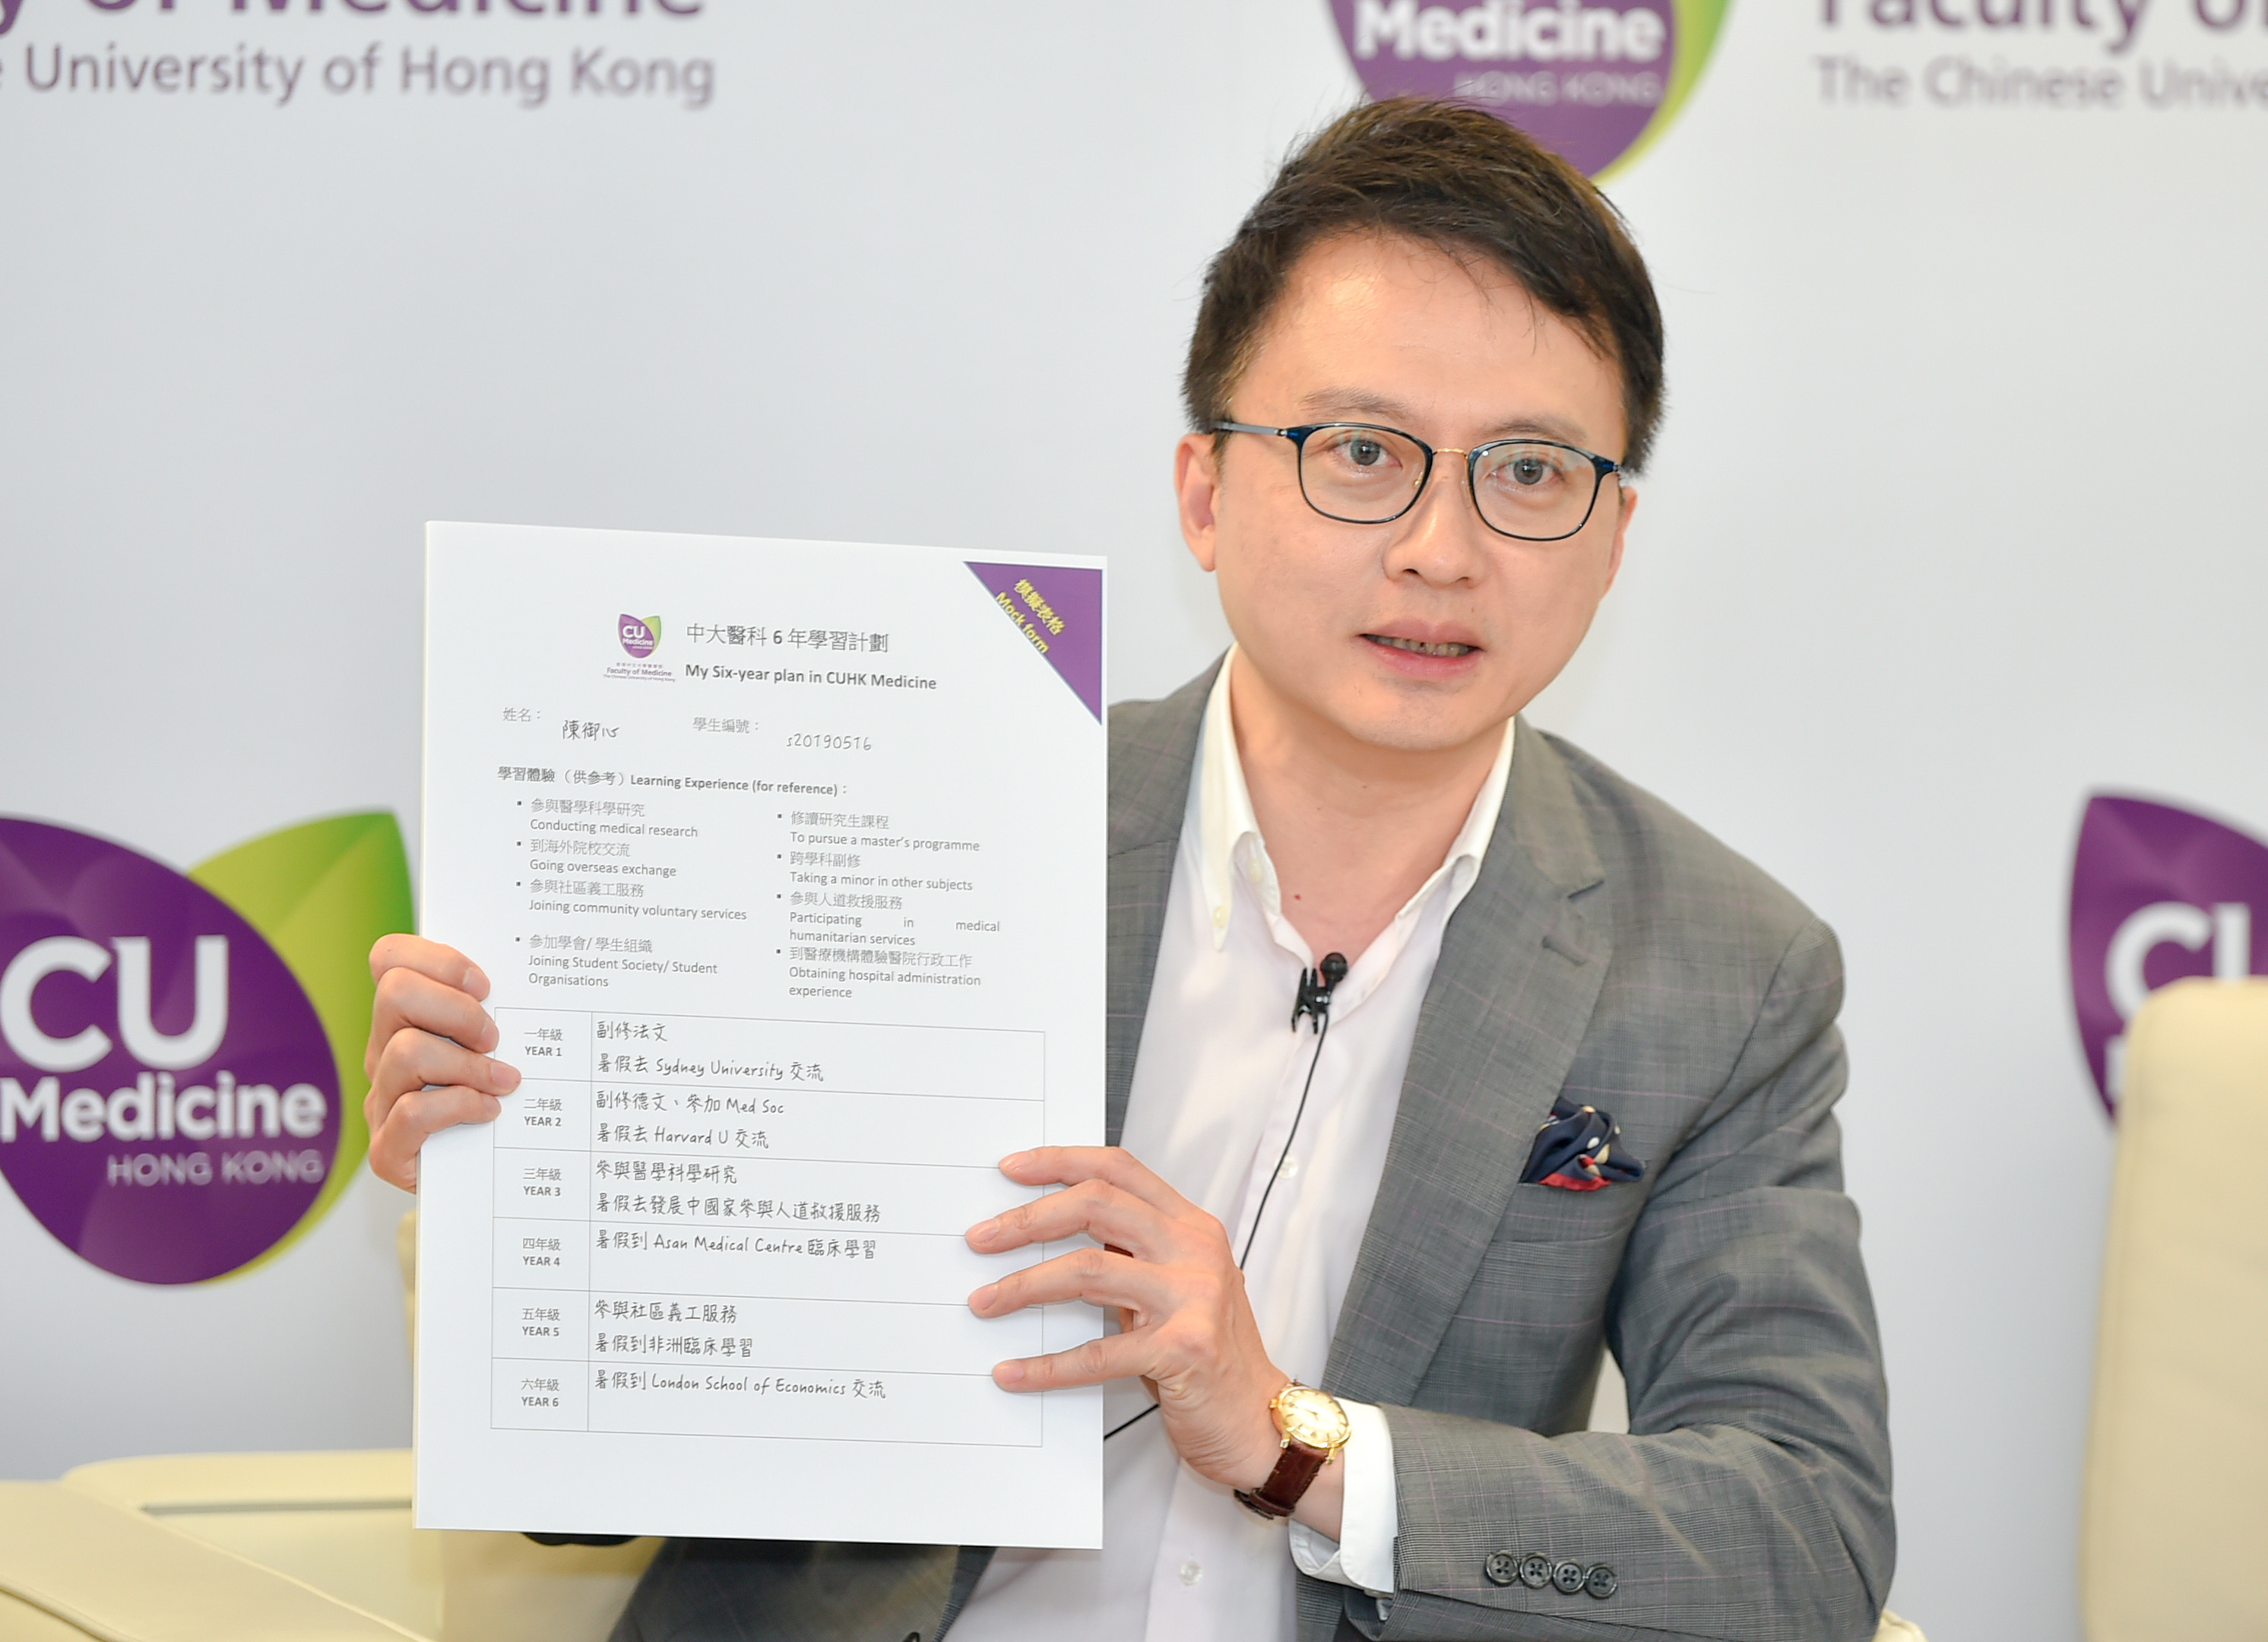 CUHK Announces 2019-20 Admission Score for Medicine and the